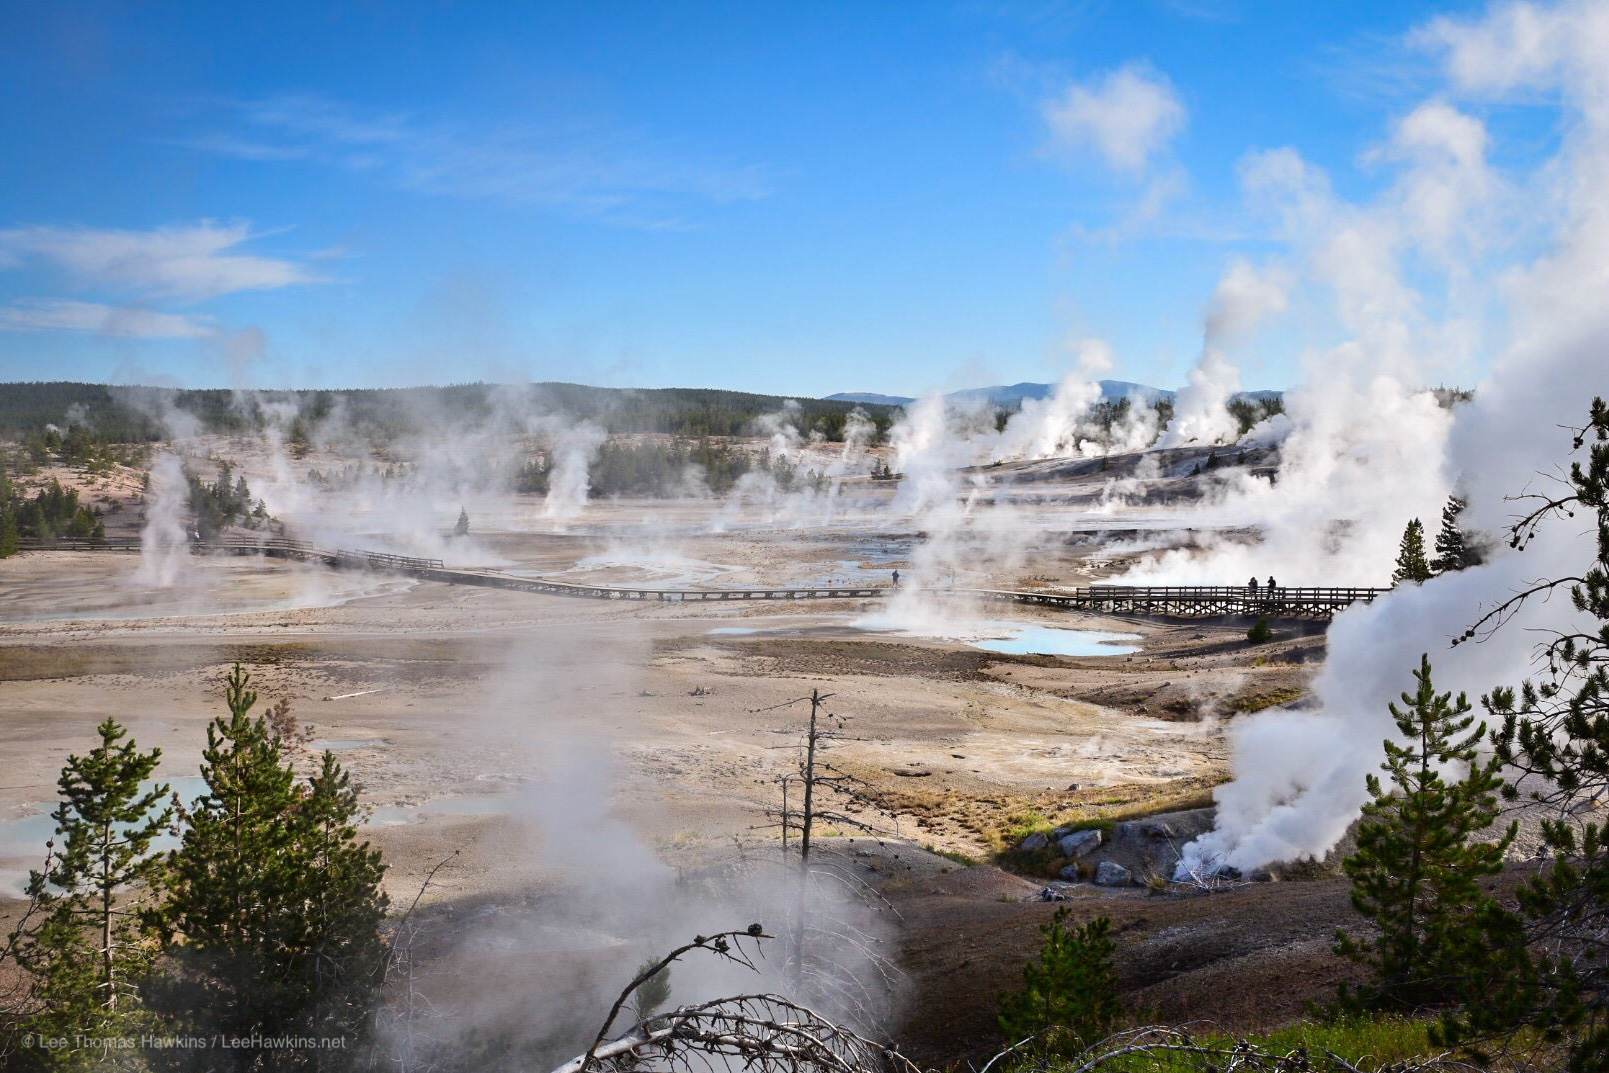 Geysers and got springs bellow hot water and steam across a grey landscape that looks like another planet.